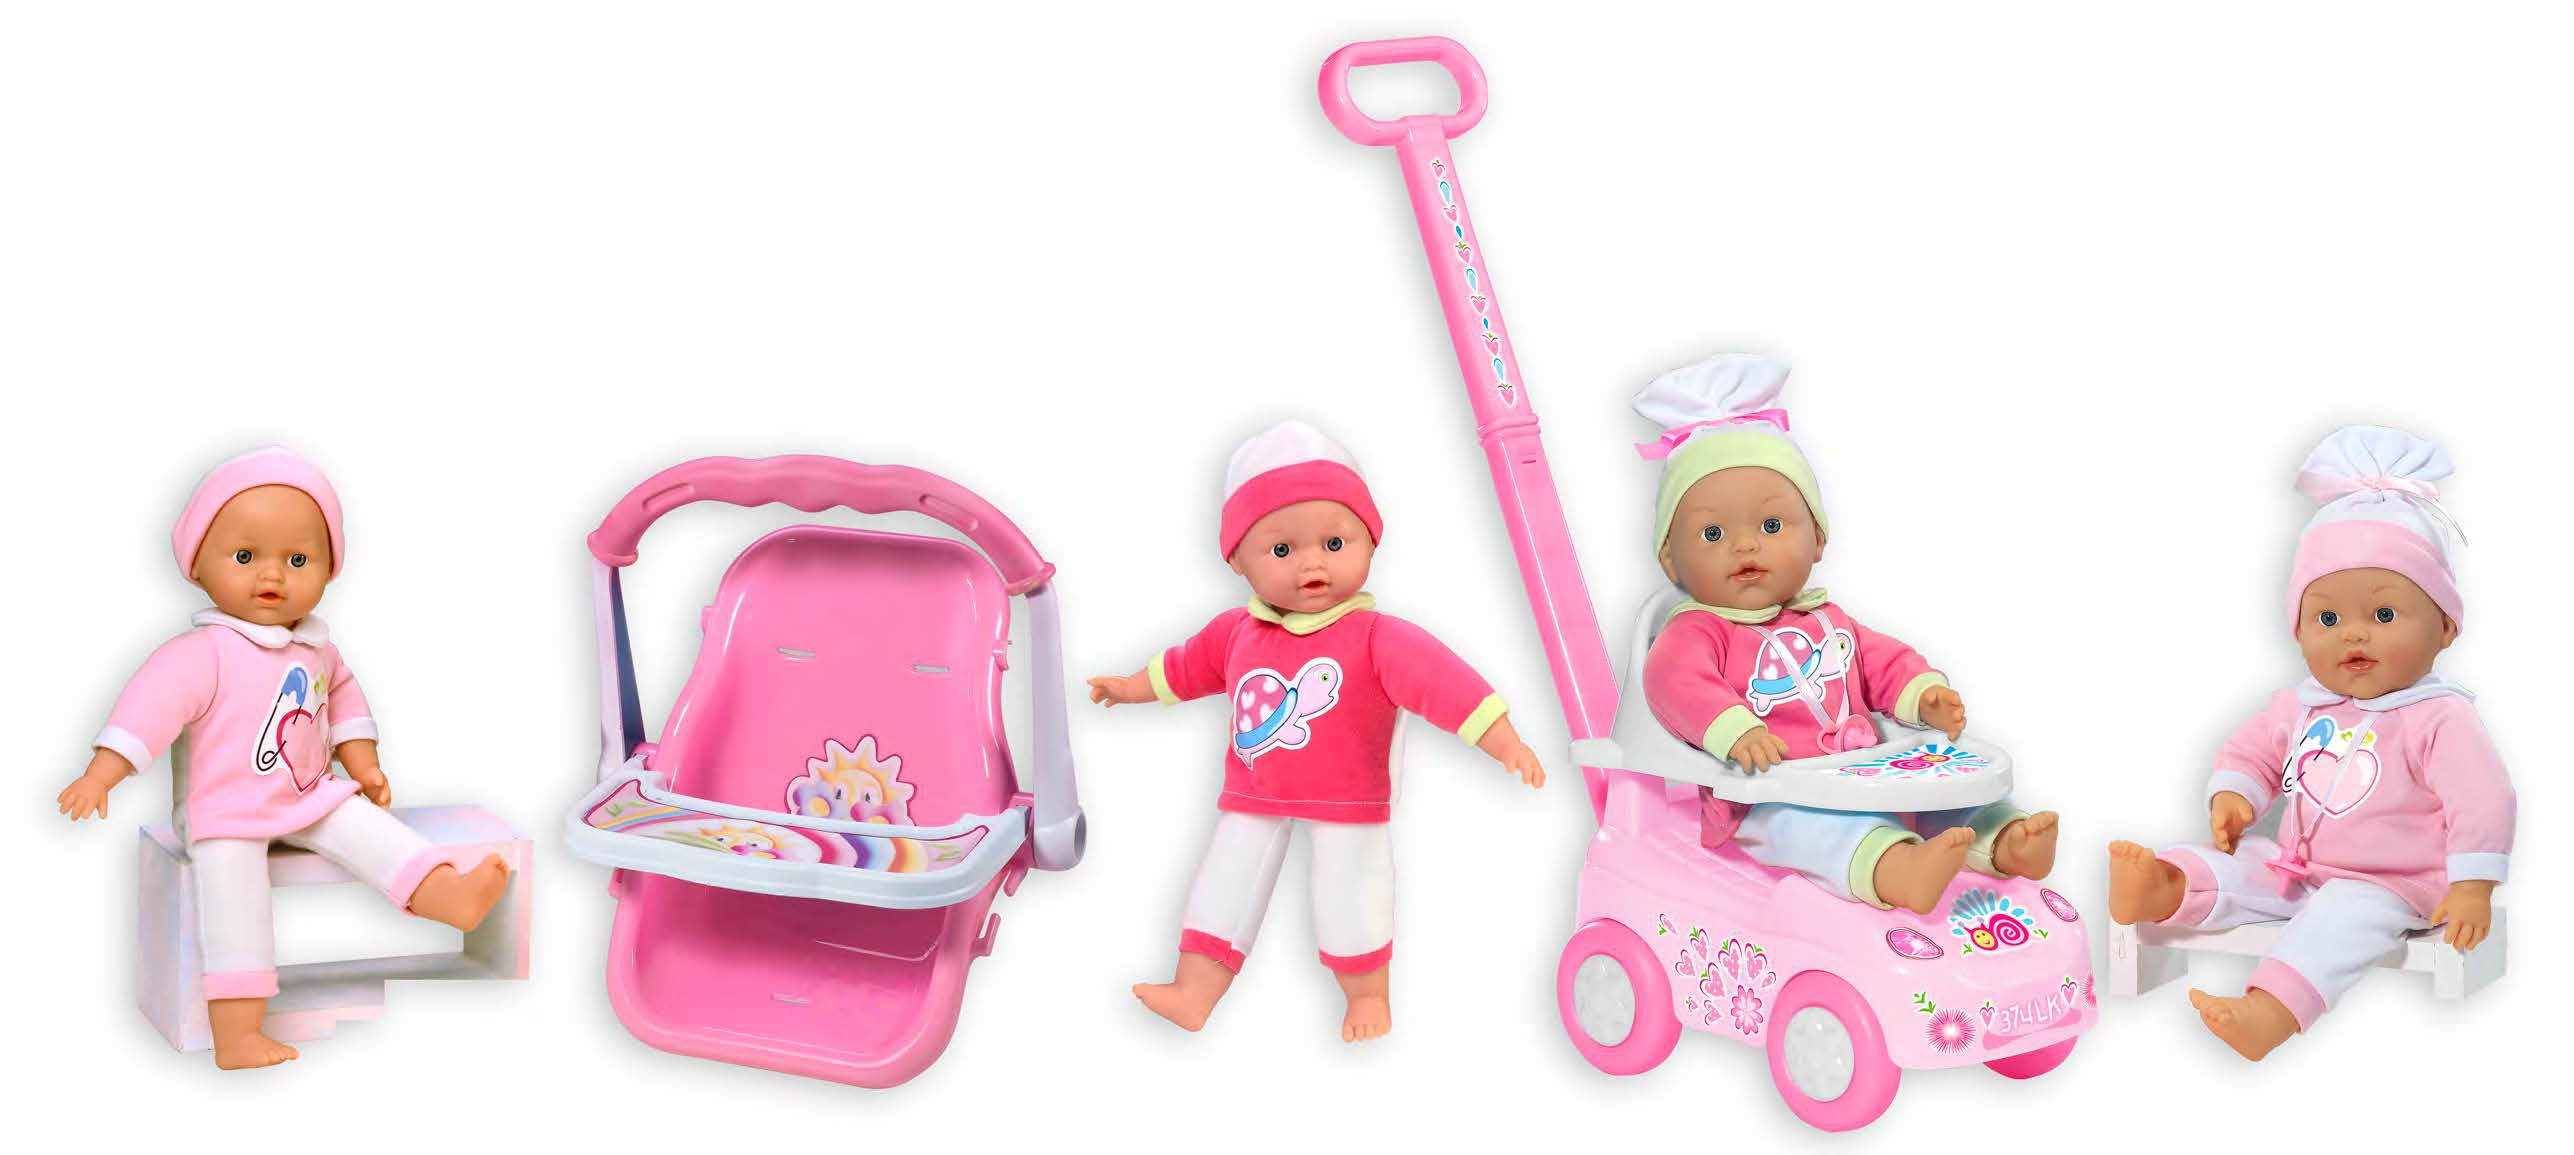 Пупсы Dolls Loko My Dolly Sucette sticker dolly dressing fashion designer spring and summer collection